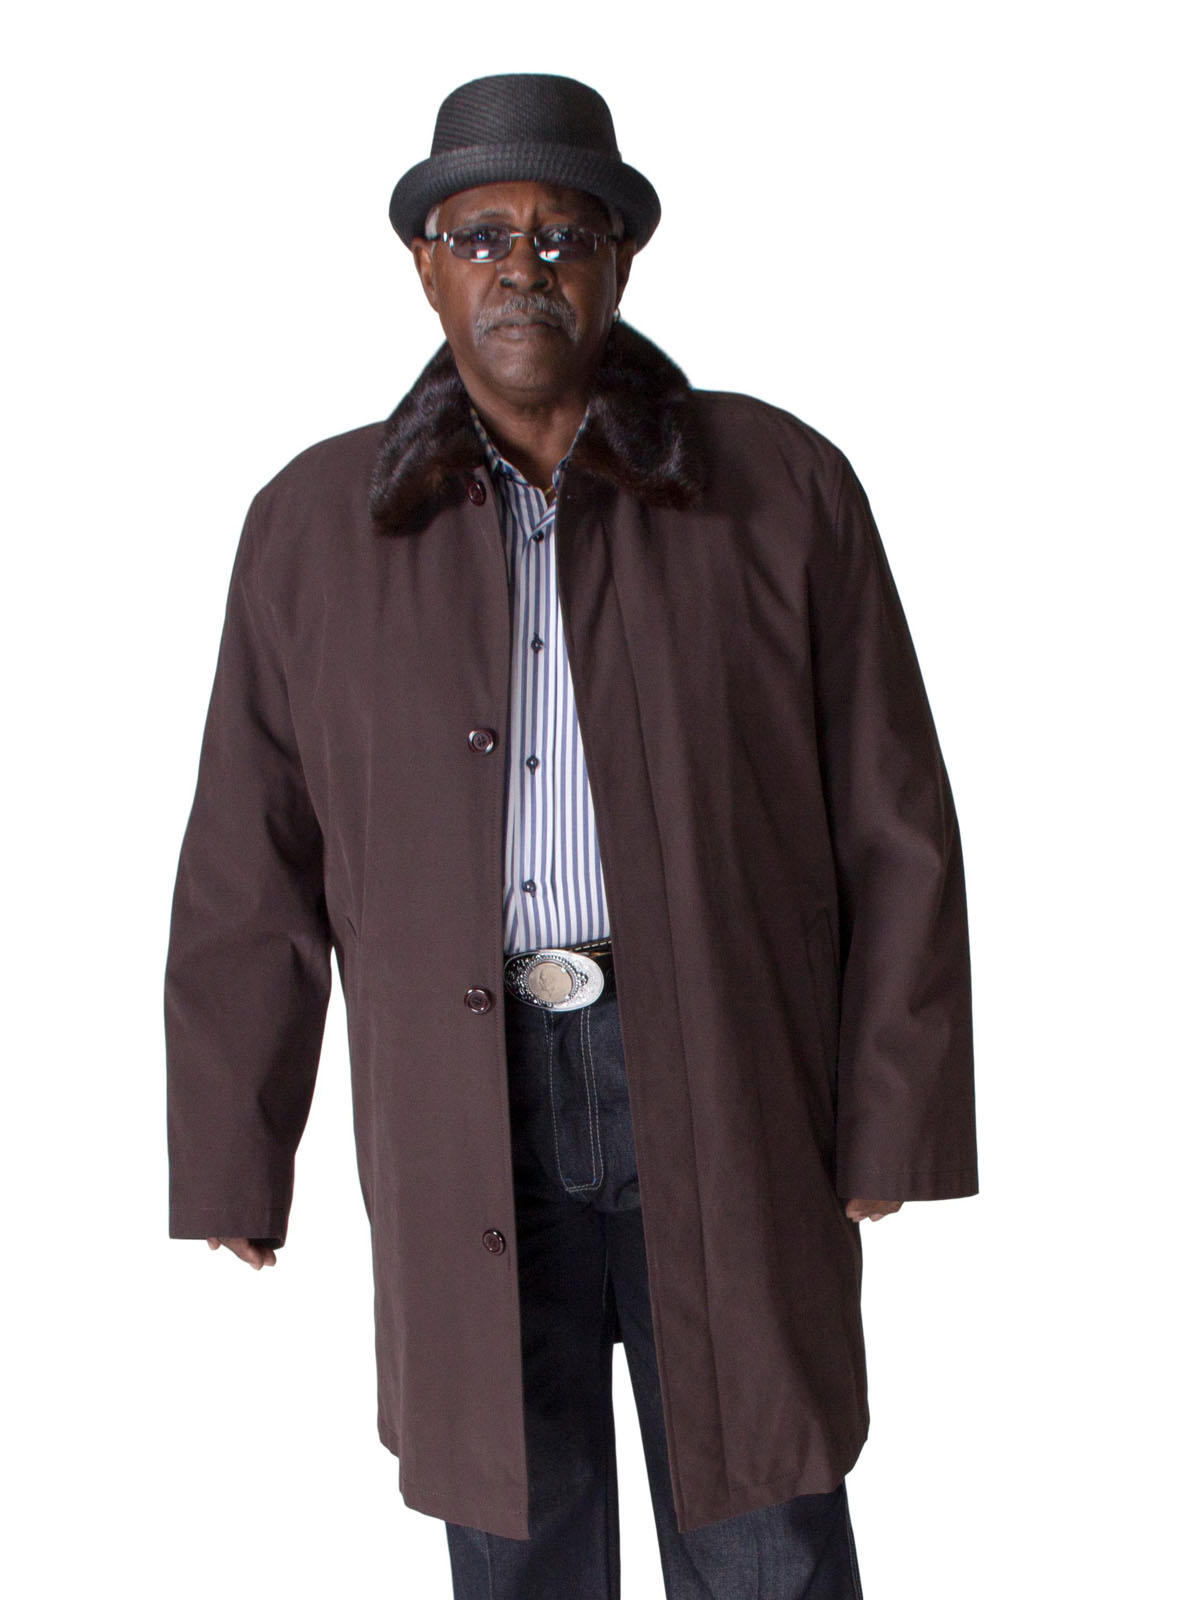 NEW Man's Brown Gabardine Trench Coat with Mink Collar and Liner